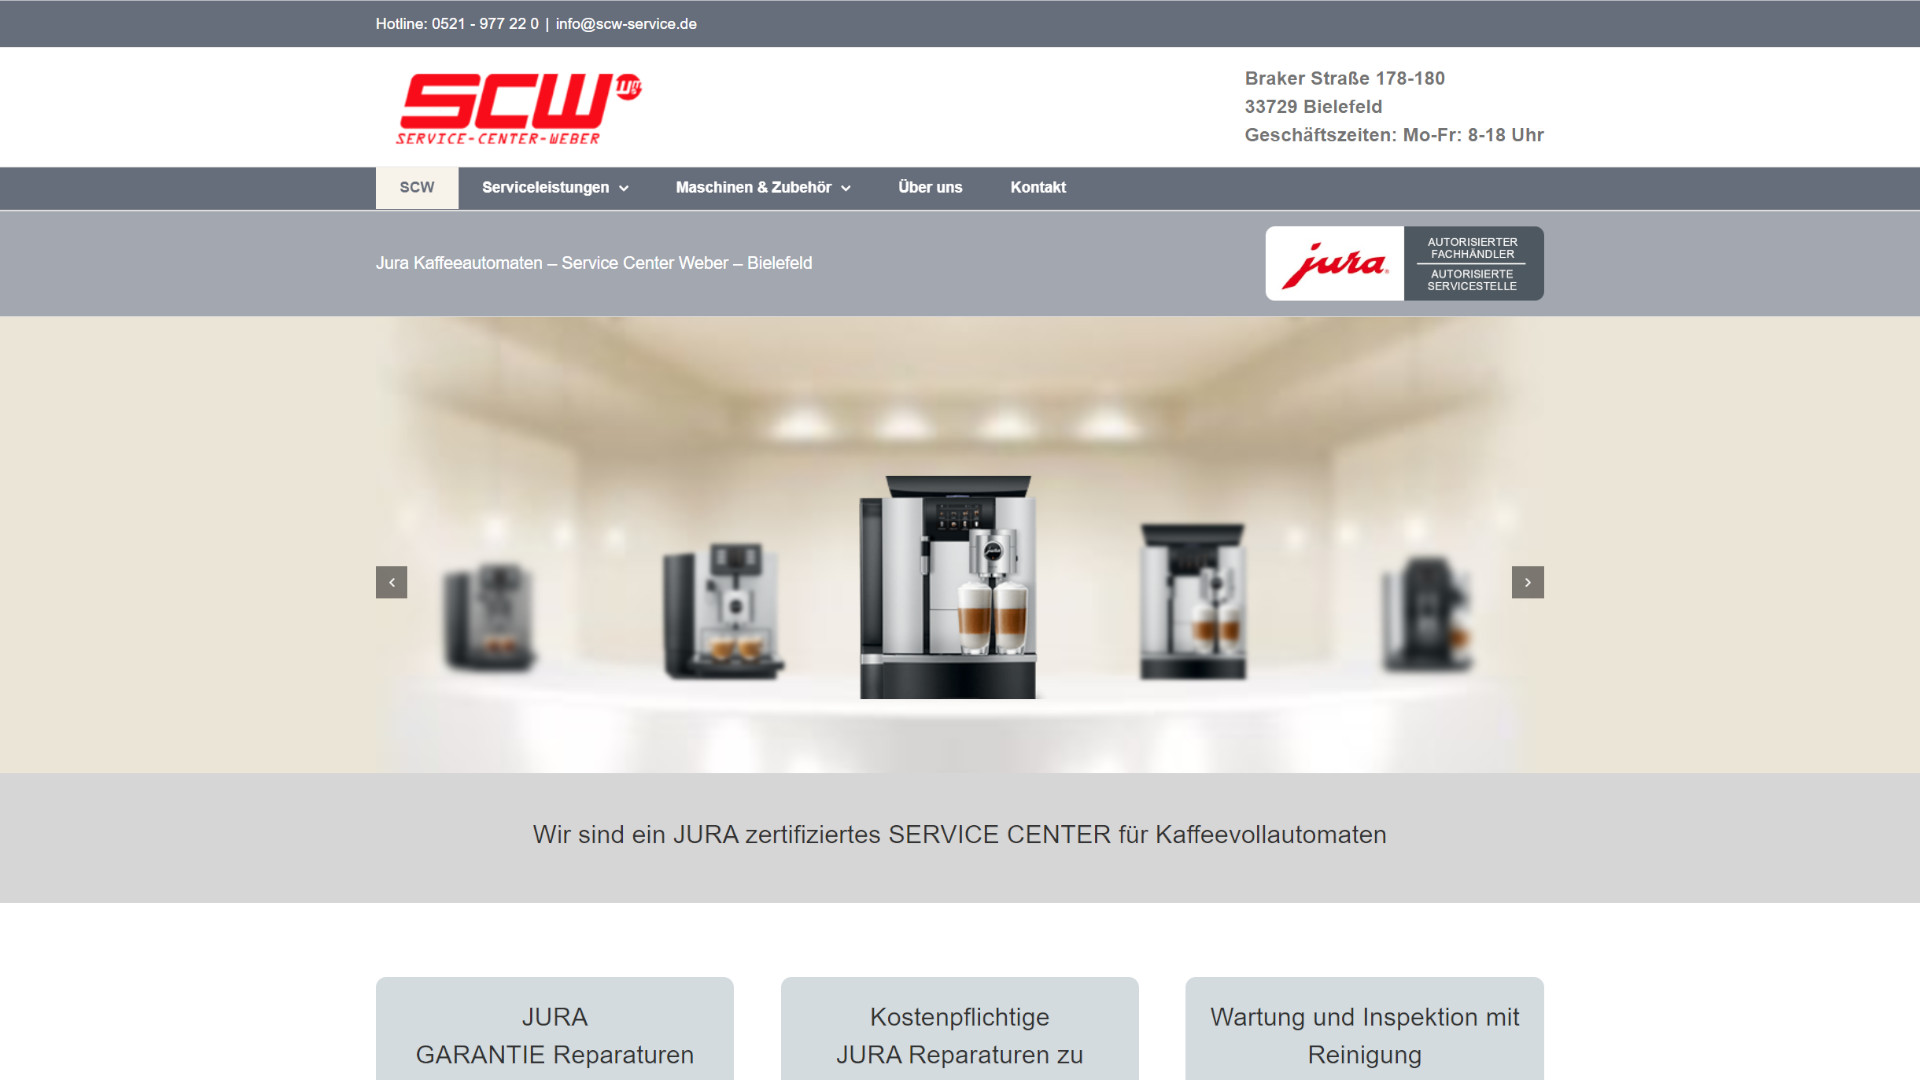 Screenshot: Homepage Jura Service Center Weber